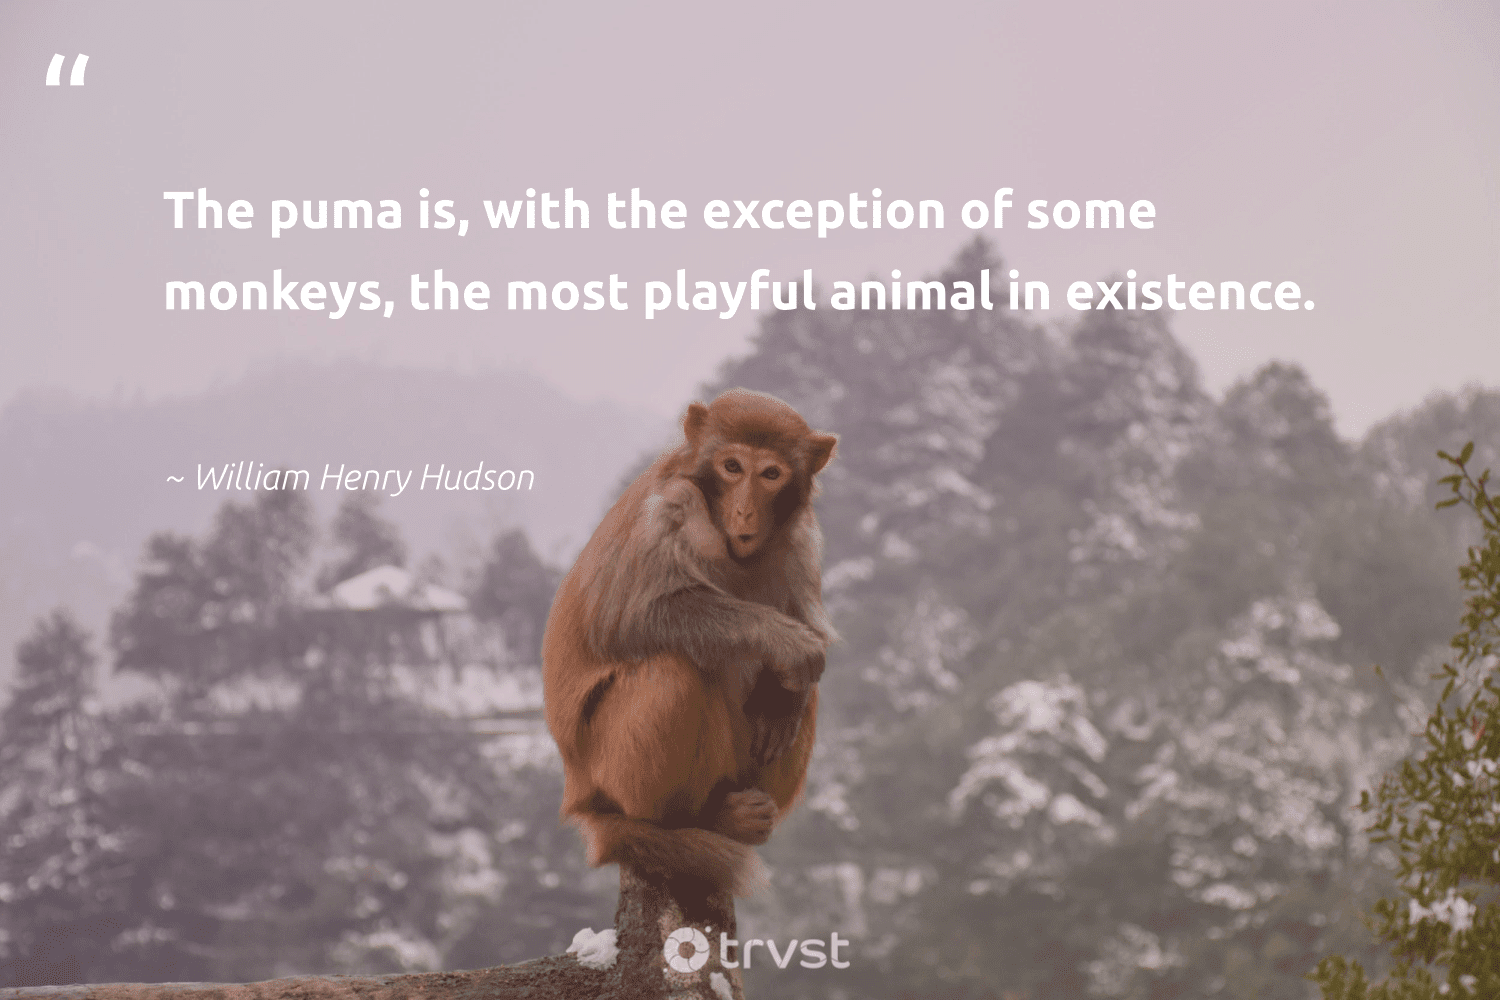 """""""The puma is, with the exception of some monkeys, the most playful animal in existence.""""  - William Henry Hudson #trvst #quotes #animal #monkeys #animallovers #protectnature #natural #takeaction #wildlife #splendidanimals #forscience #planetearthfirst"""